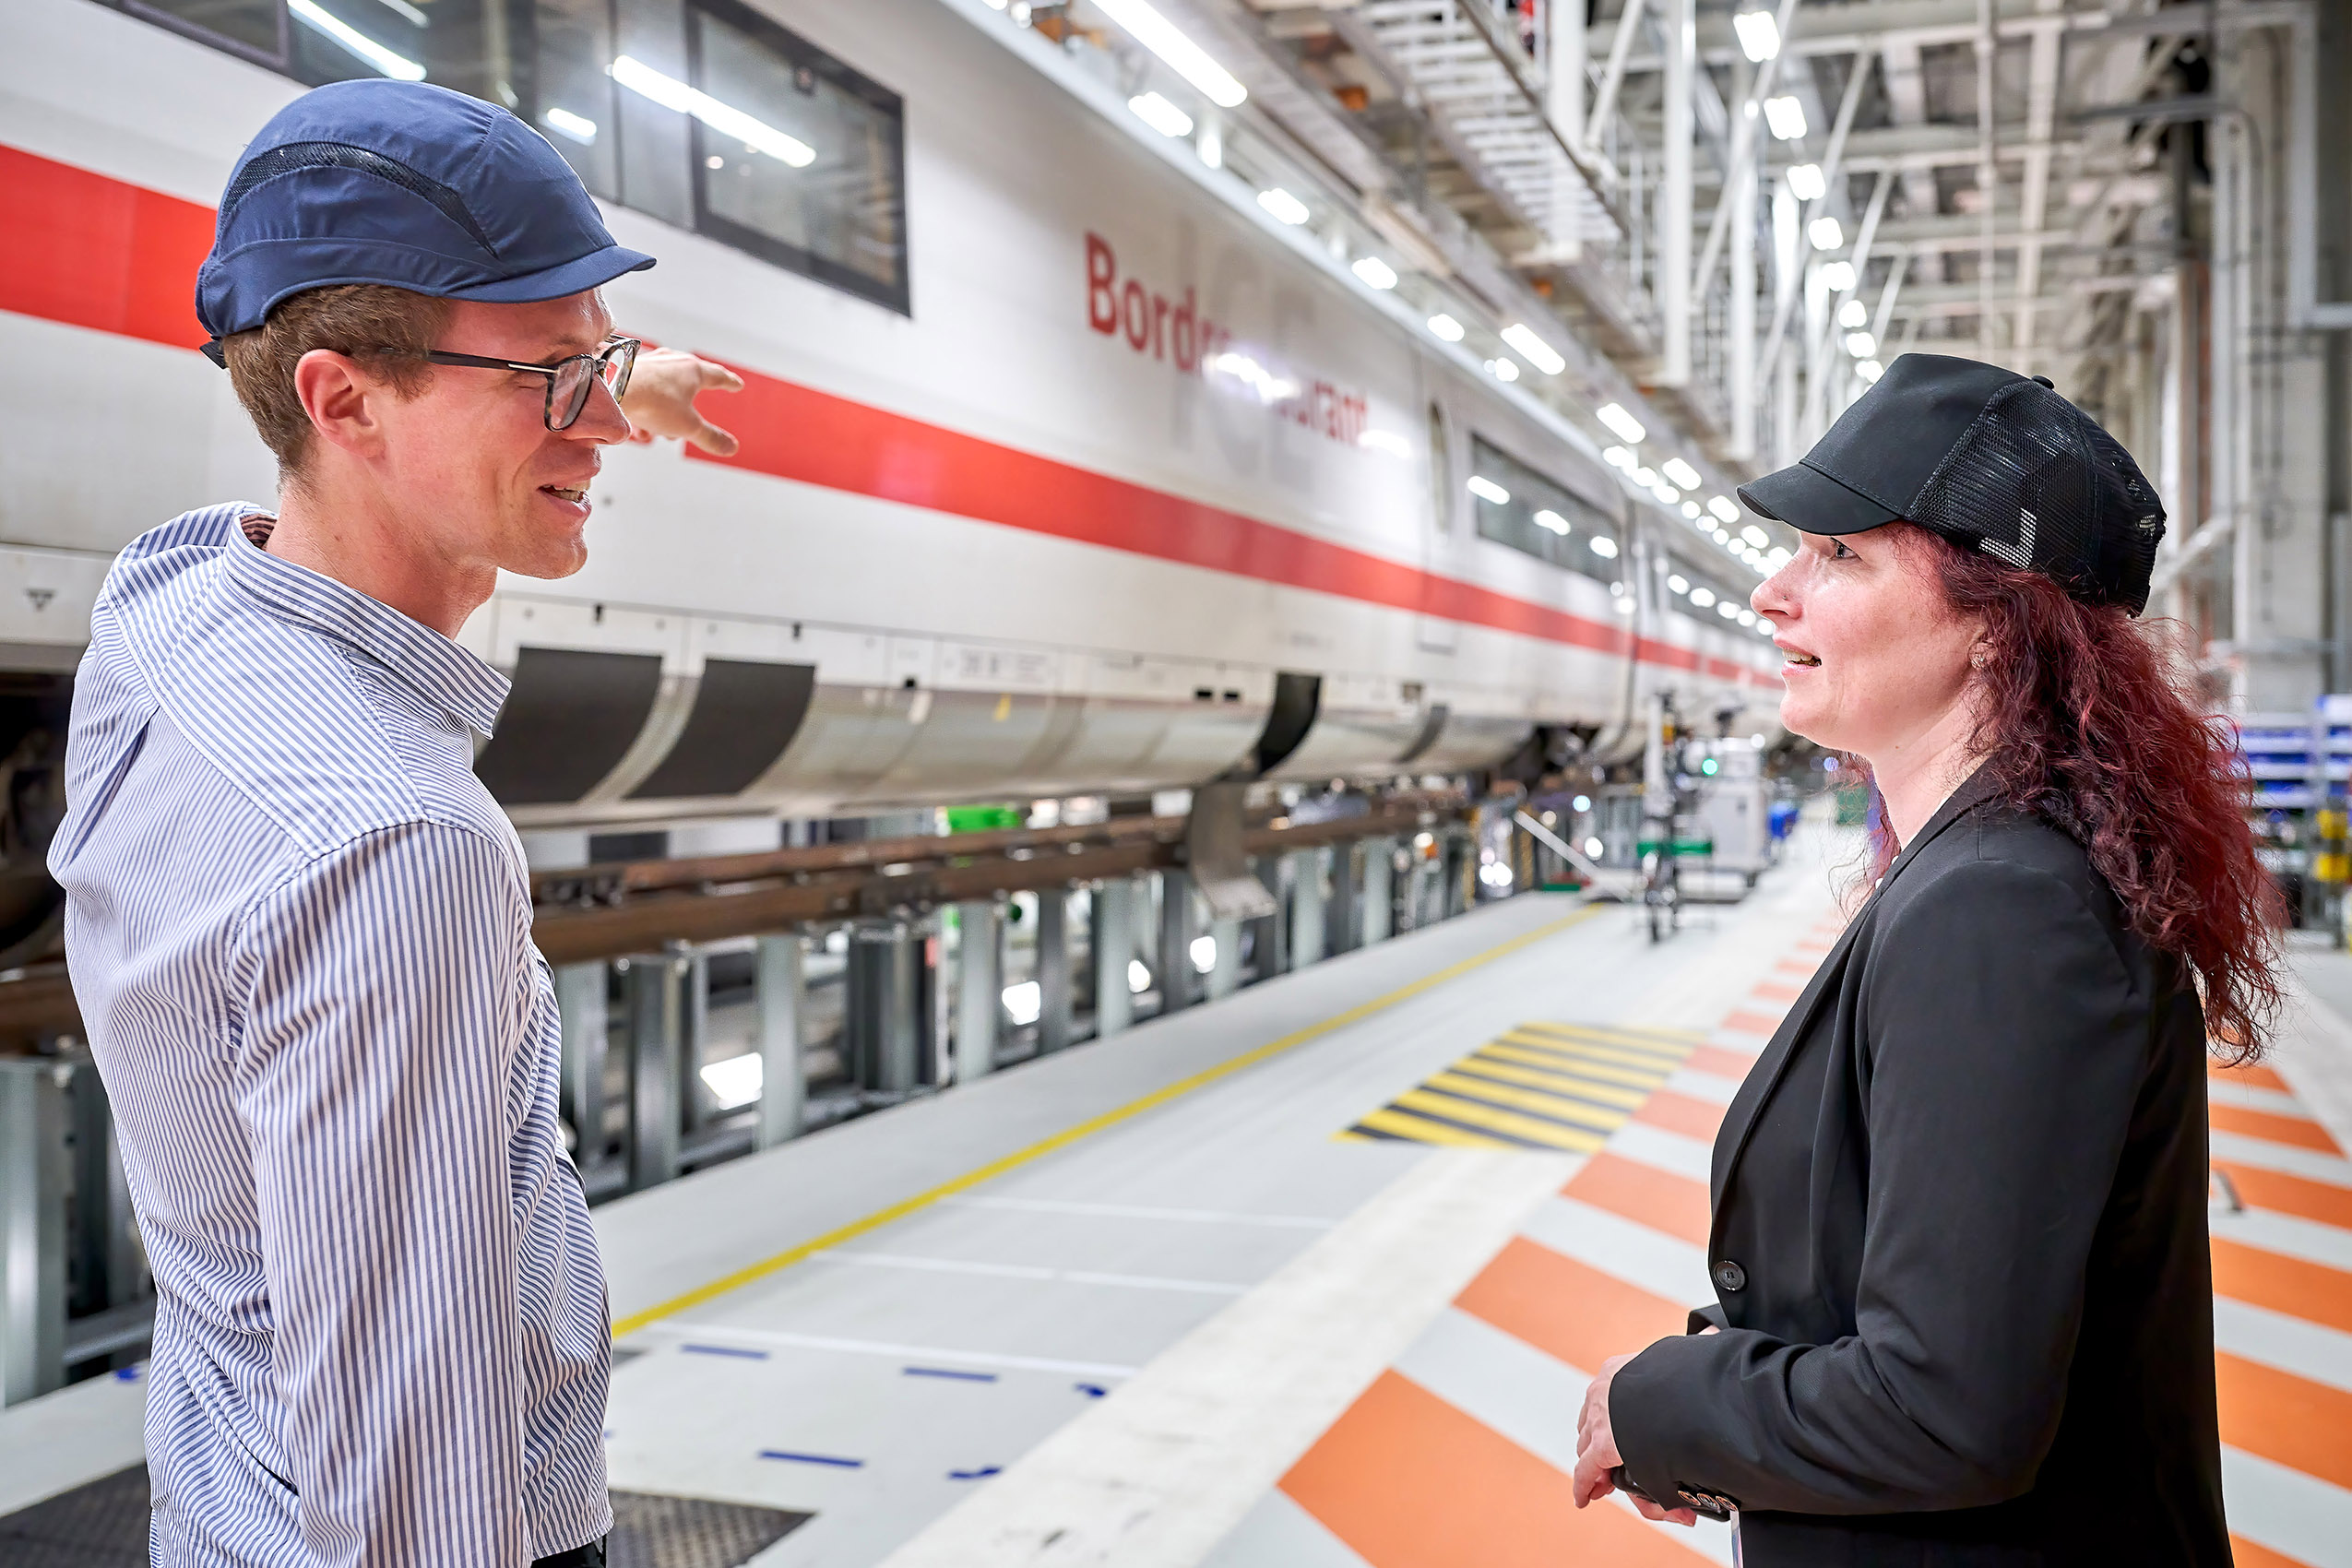 Consultation: Sonja Askew studied engineering after training as a mechatronics specialist. She values expert discussion, here with the assistant of the site's manager David Urbild.